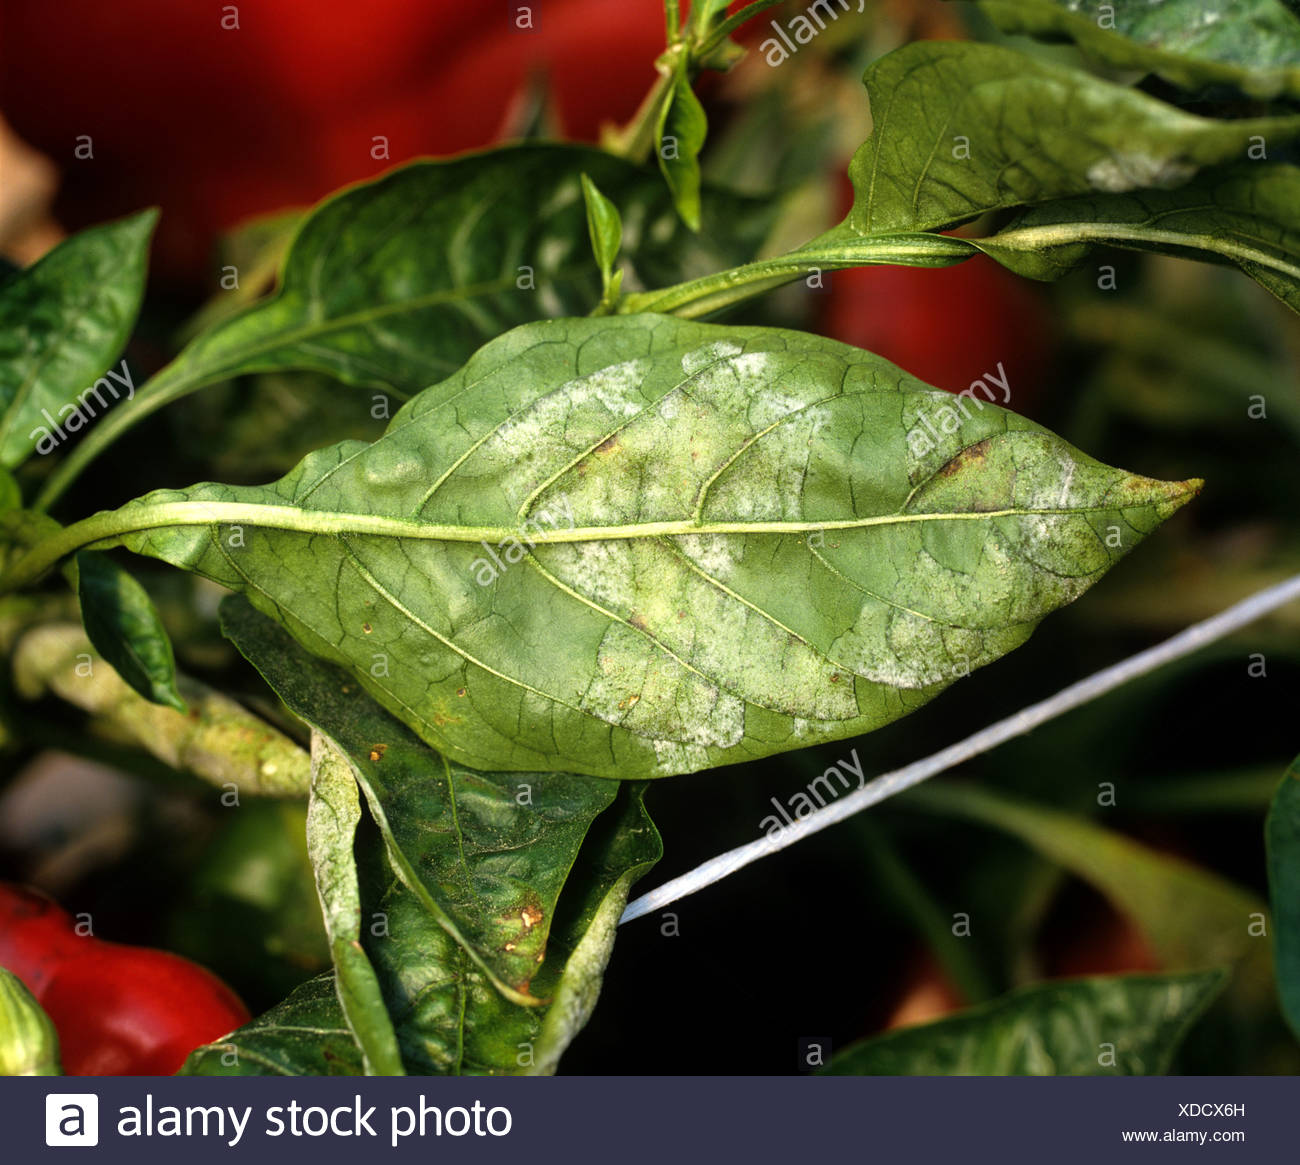 Powdery mildew Leveillula taurica infection on sweet pepper leaf Portugal - Stock Image